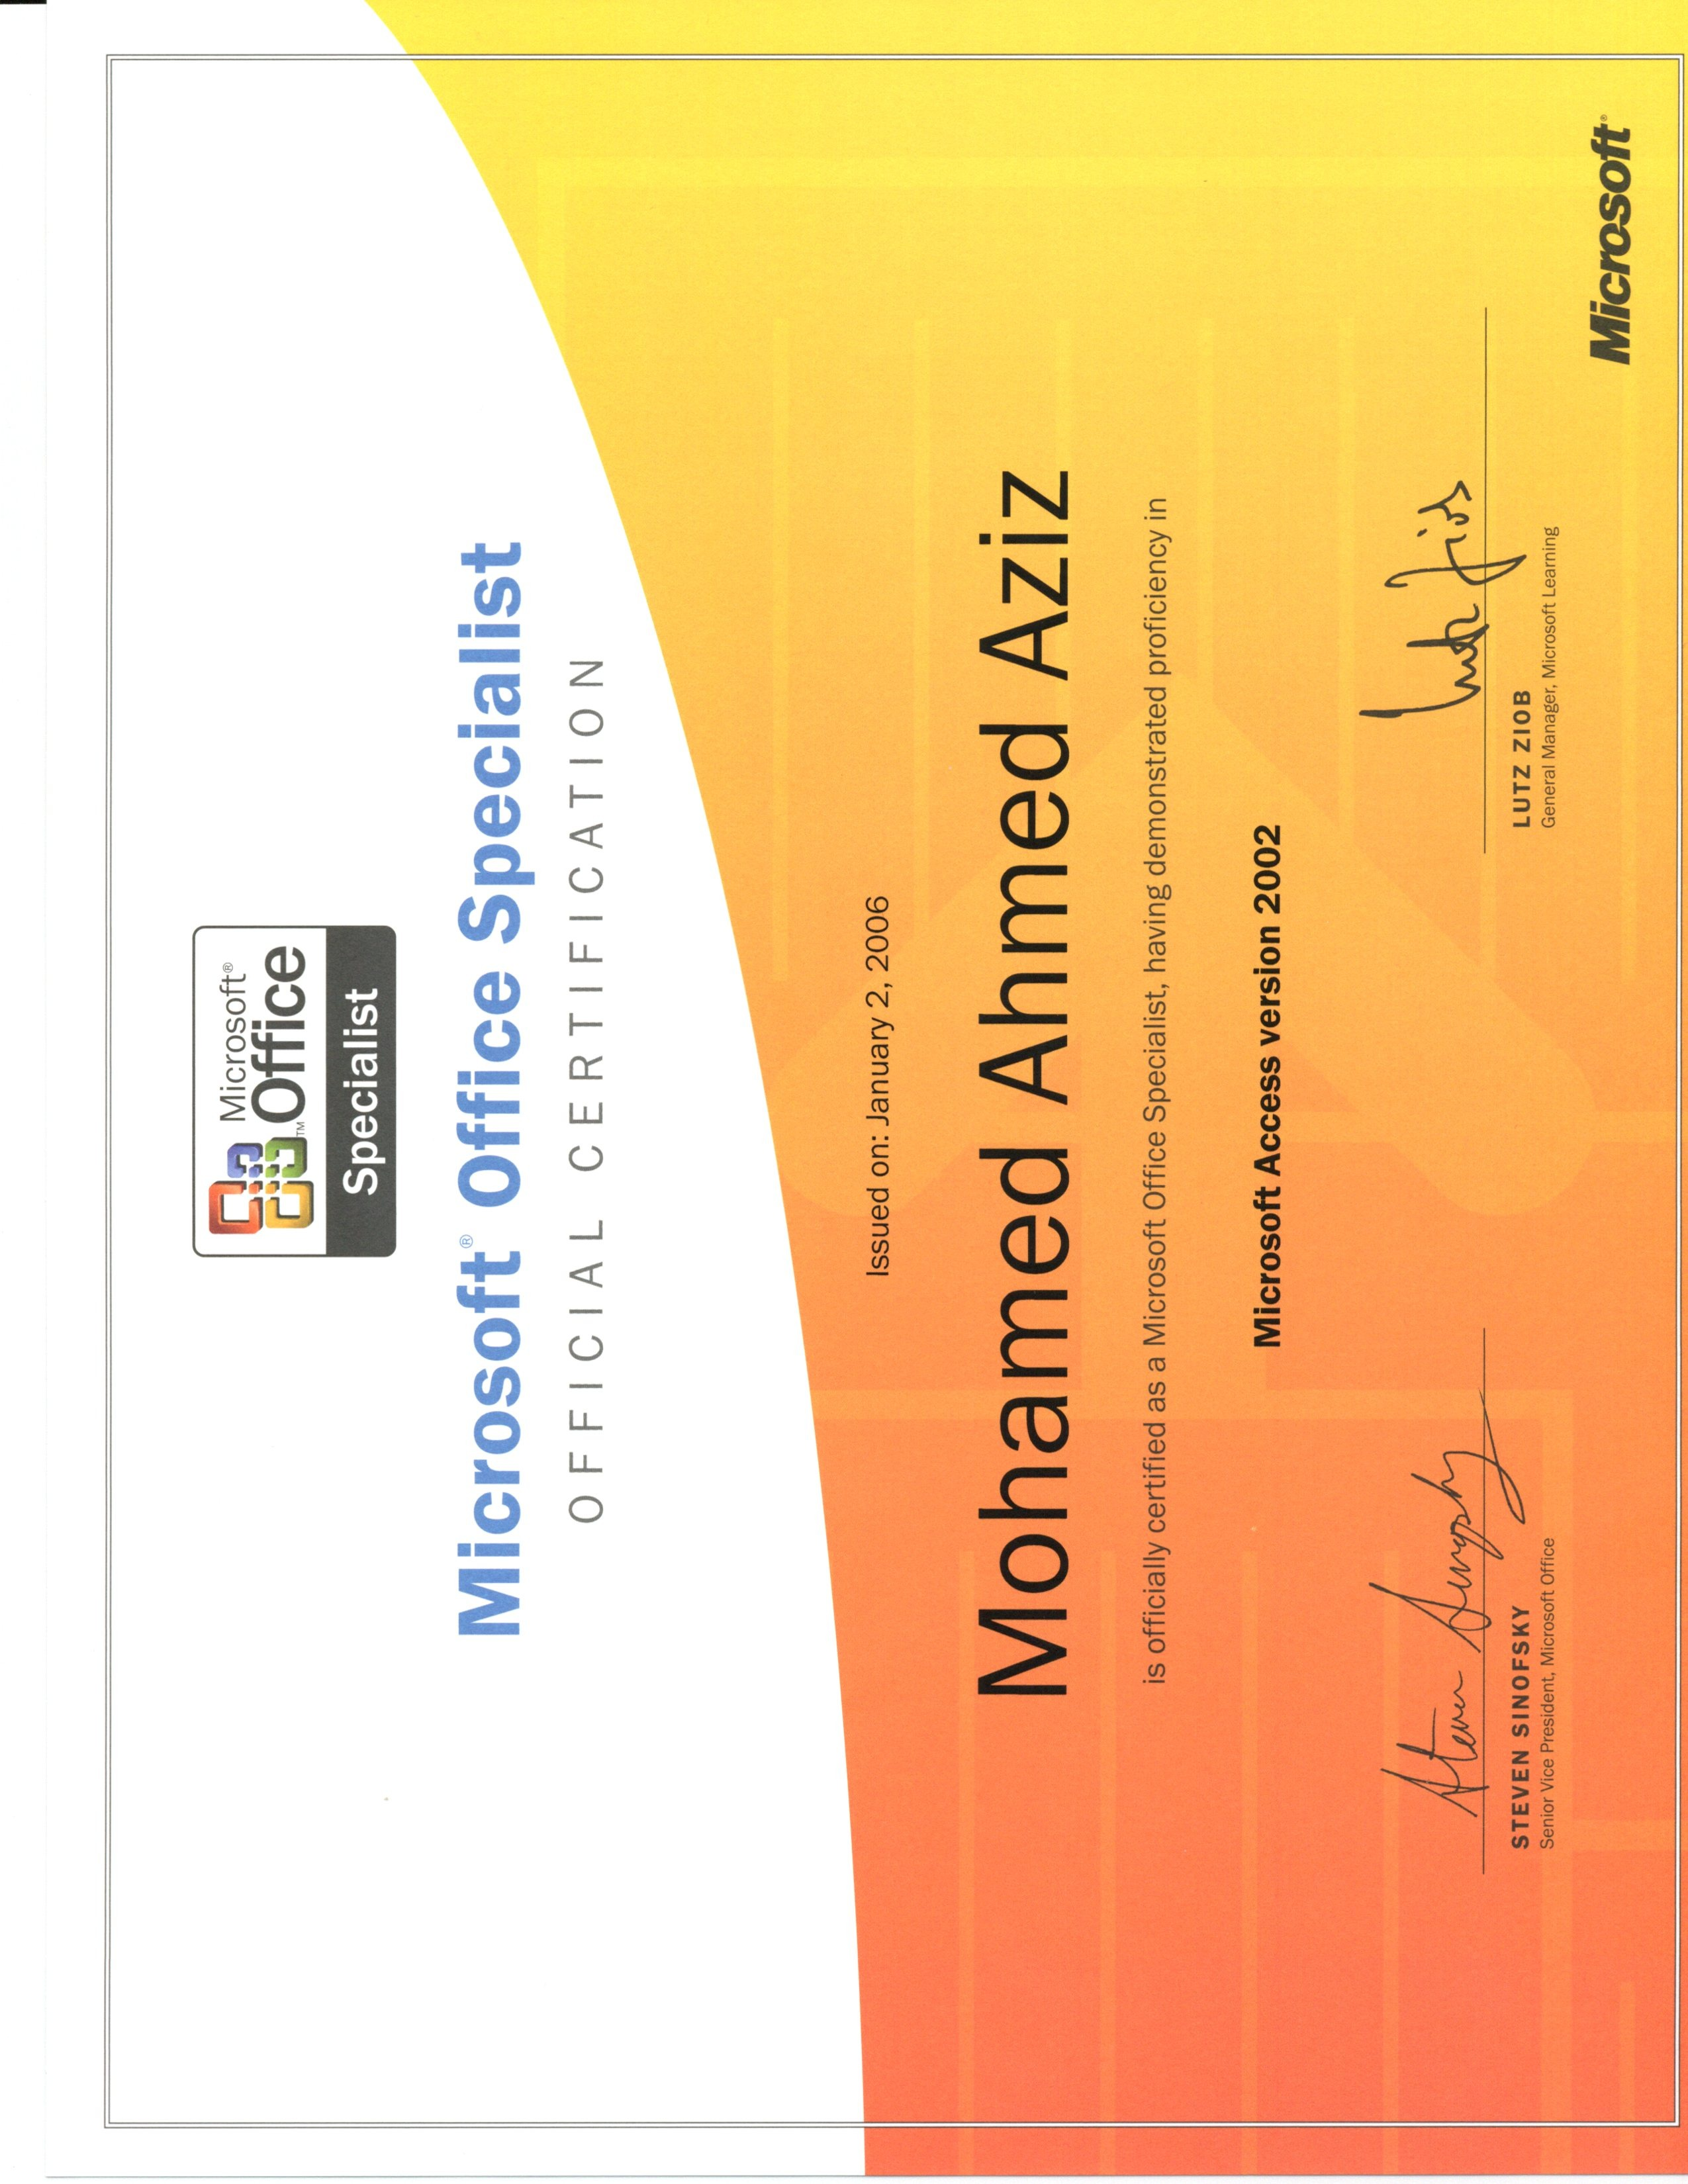 Mohamed aziz bayt microsoft office access certificate 1betcityfo Image collections